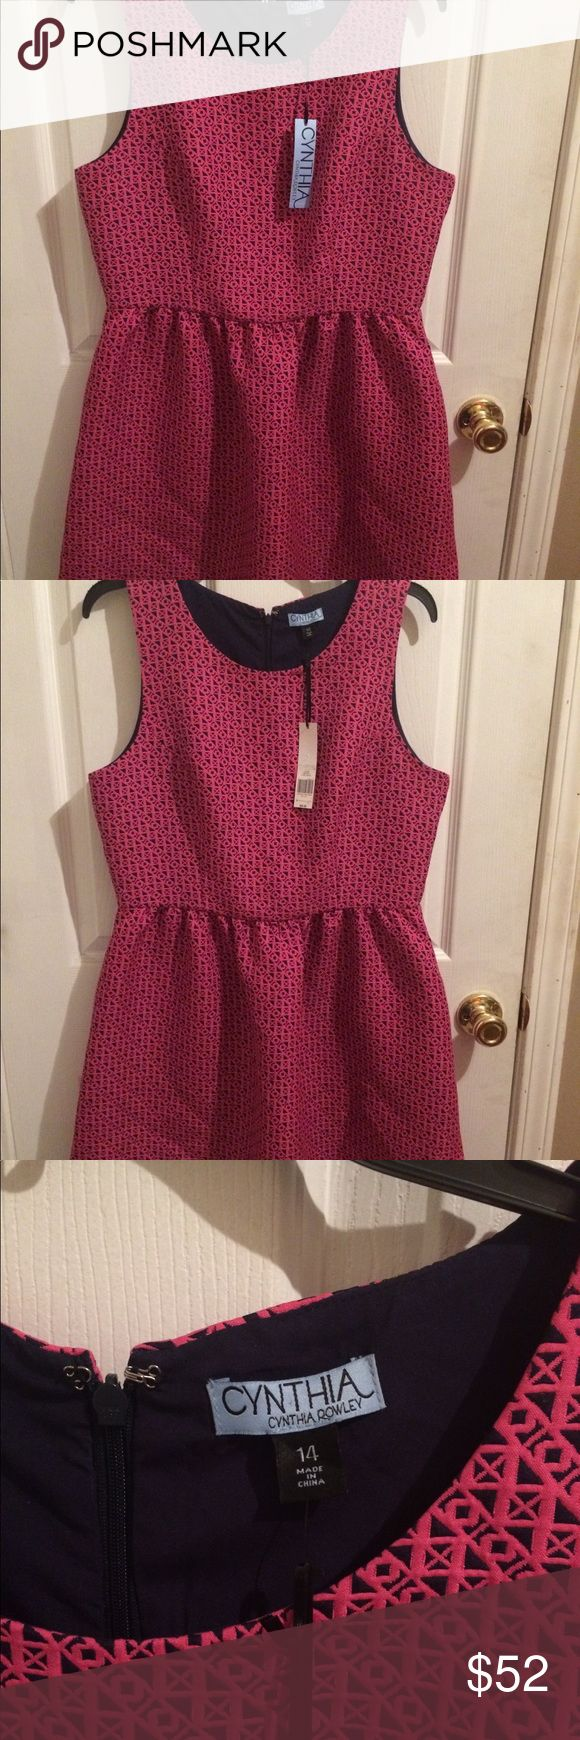 Cynthia Rowley Dress Brand new Cynthia Rowley Dress with tags! It's pink and navy blue. It's a women's size 14. Came from Belk and retails at $99.00. Cynthia Rowley Dresses Midi